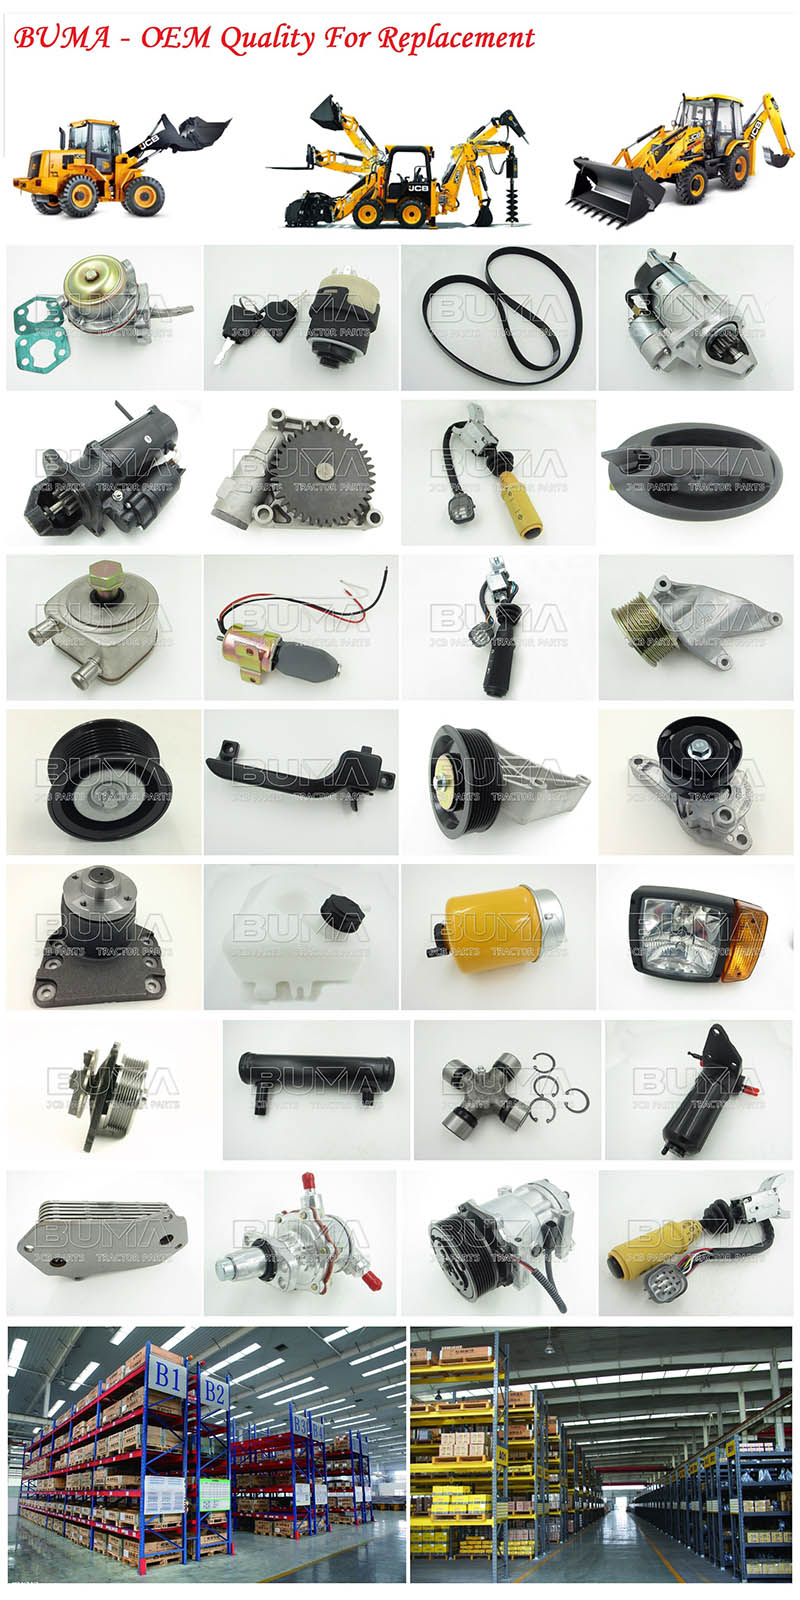 JCB-SPAER-PARTS-3CX-4CX